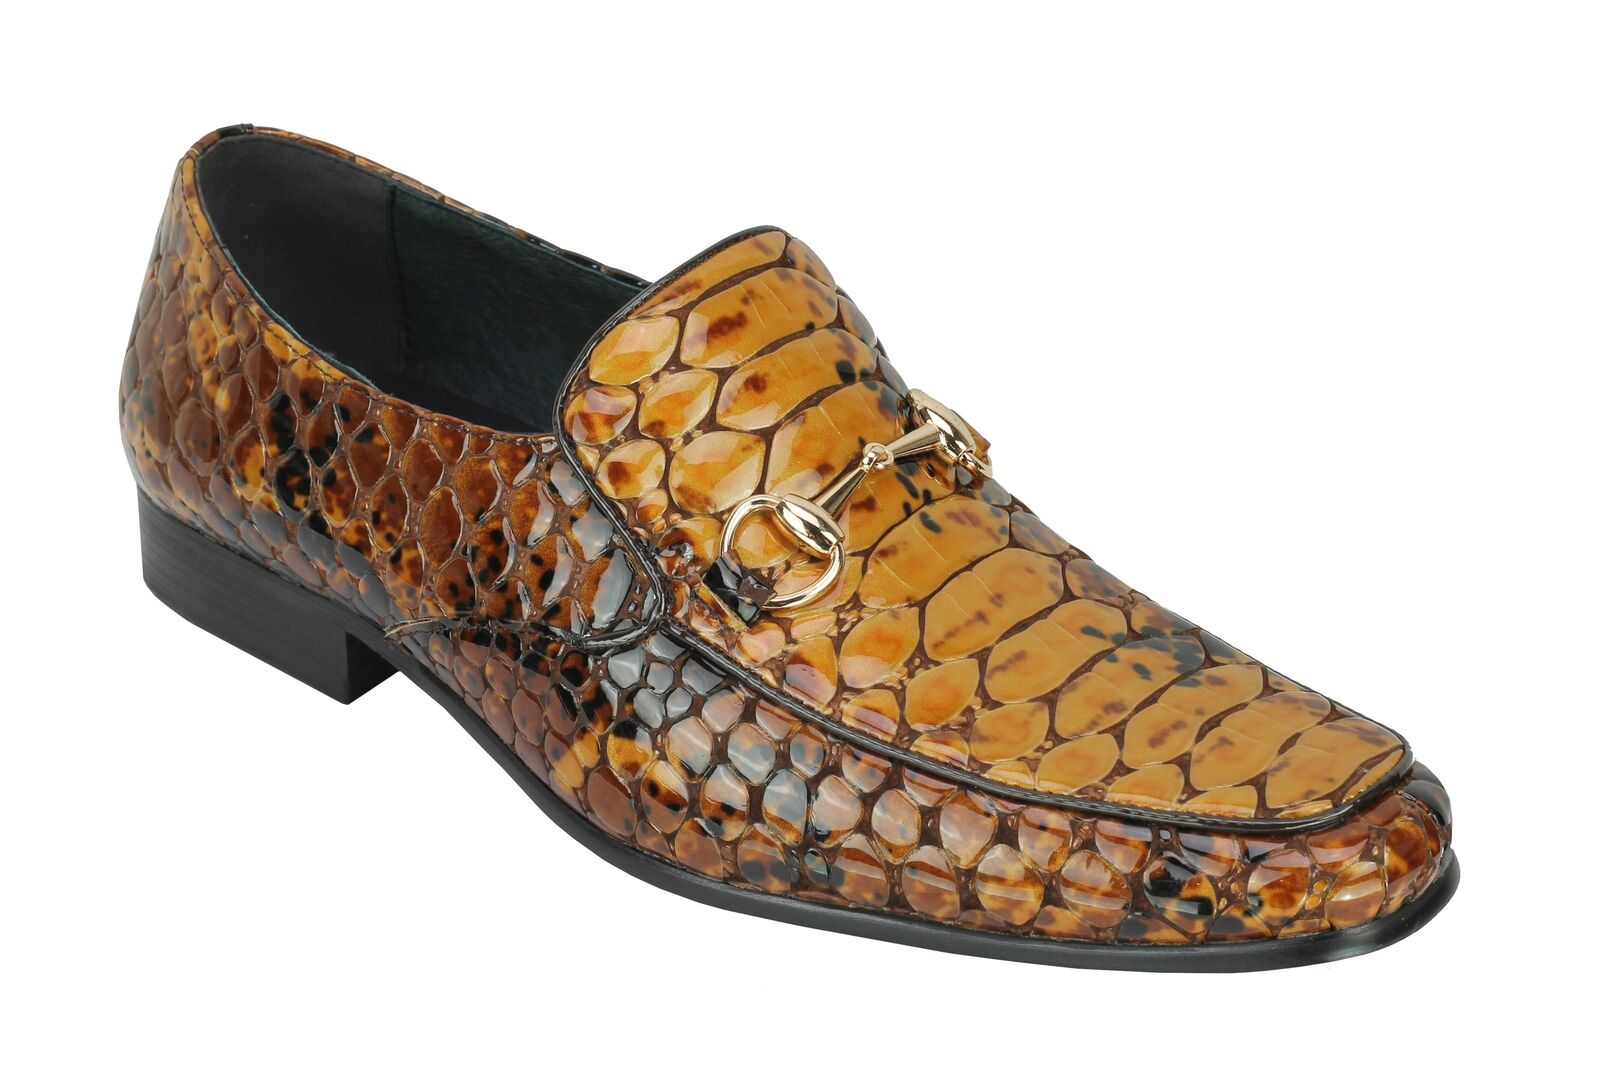 Mens Real Leather Croc Effect Gold Buckle Funky Smart Patent Party Slip on schuhe